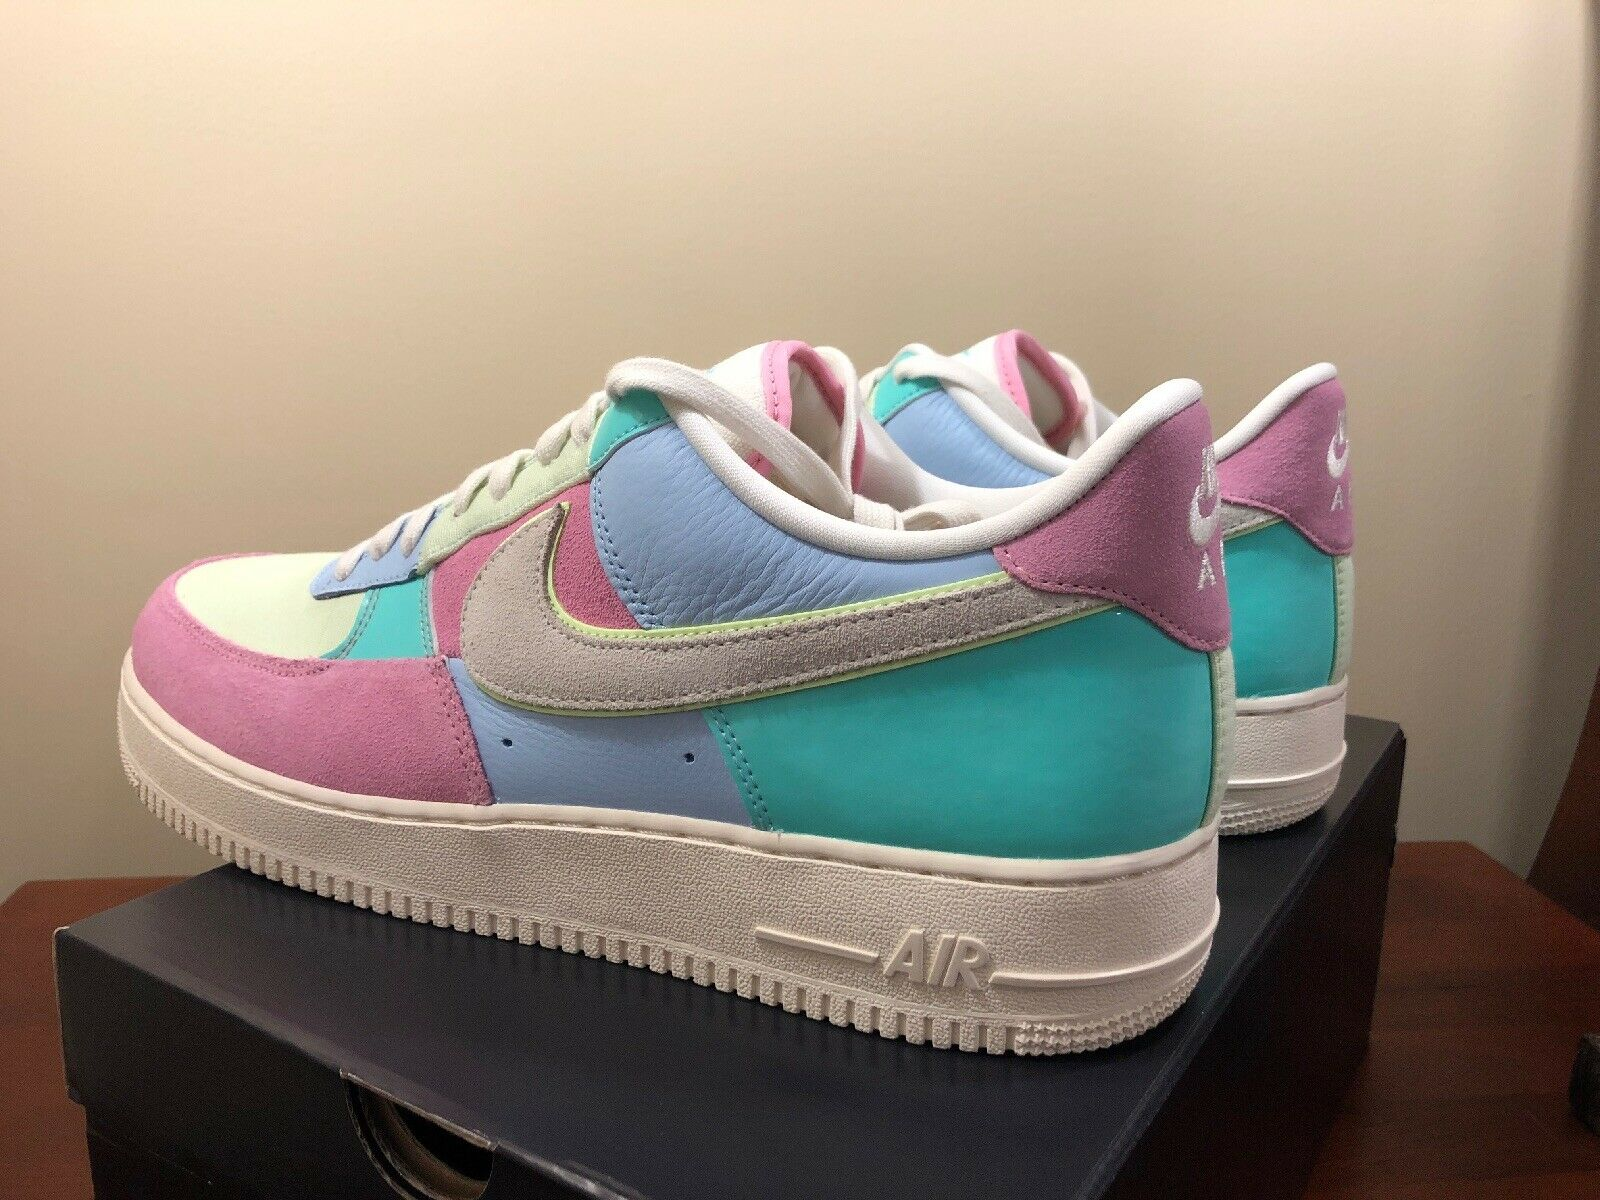 NIKE AIR FORCE 1 07 QS SPRING PATCHWORK [AH8462 400] EASTER EGG PASTEL SZ 14